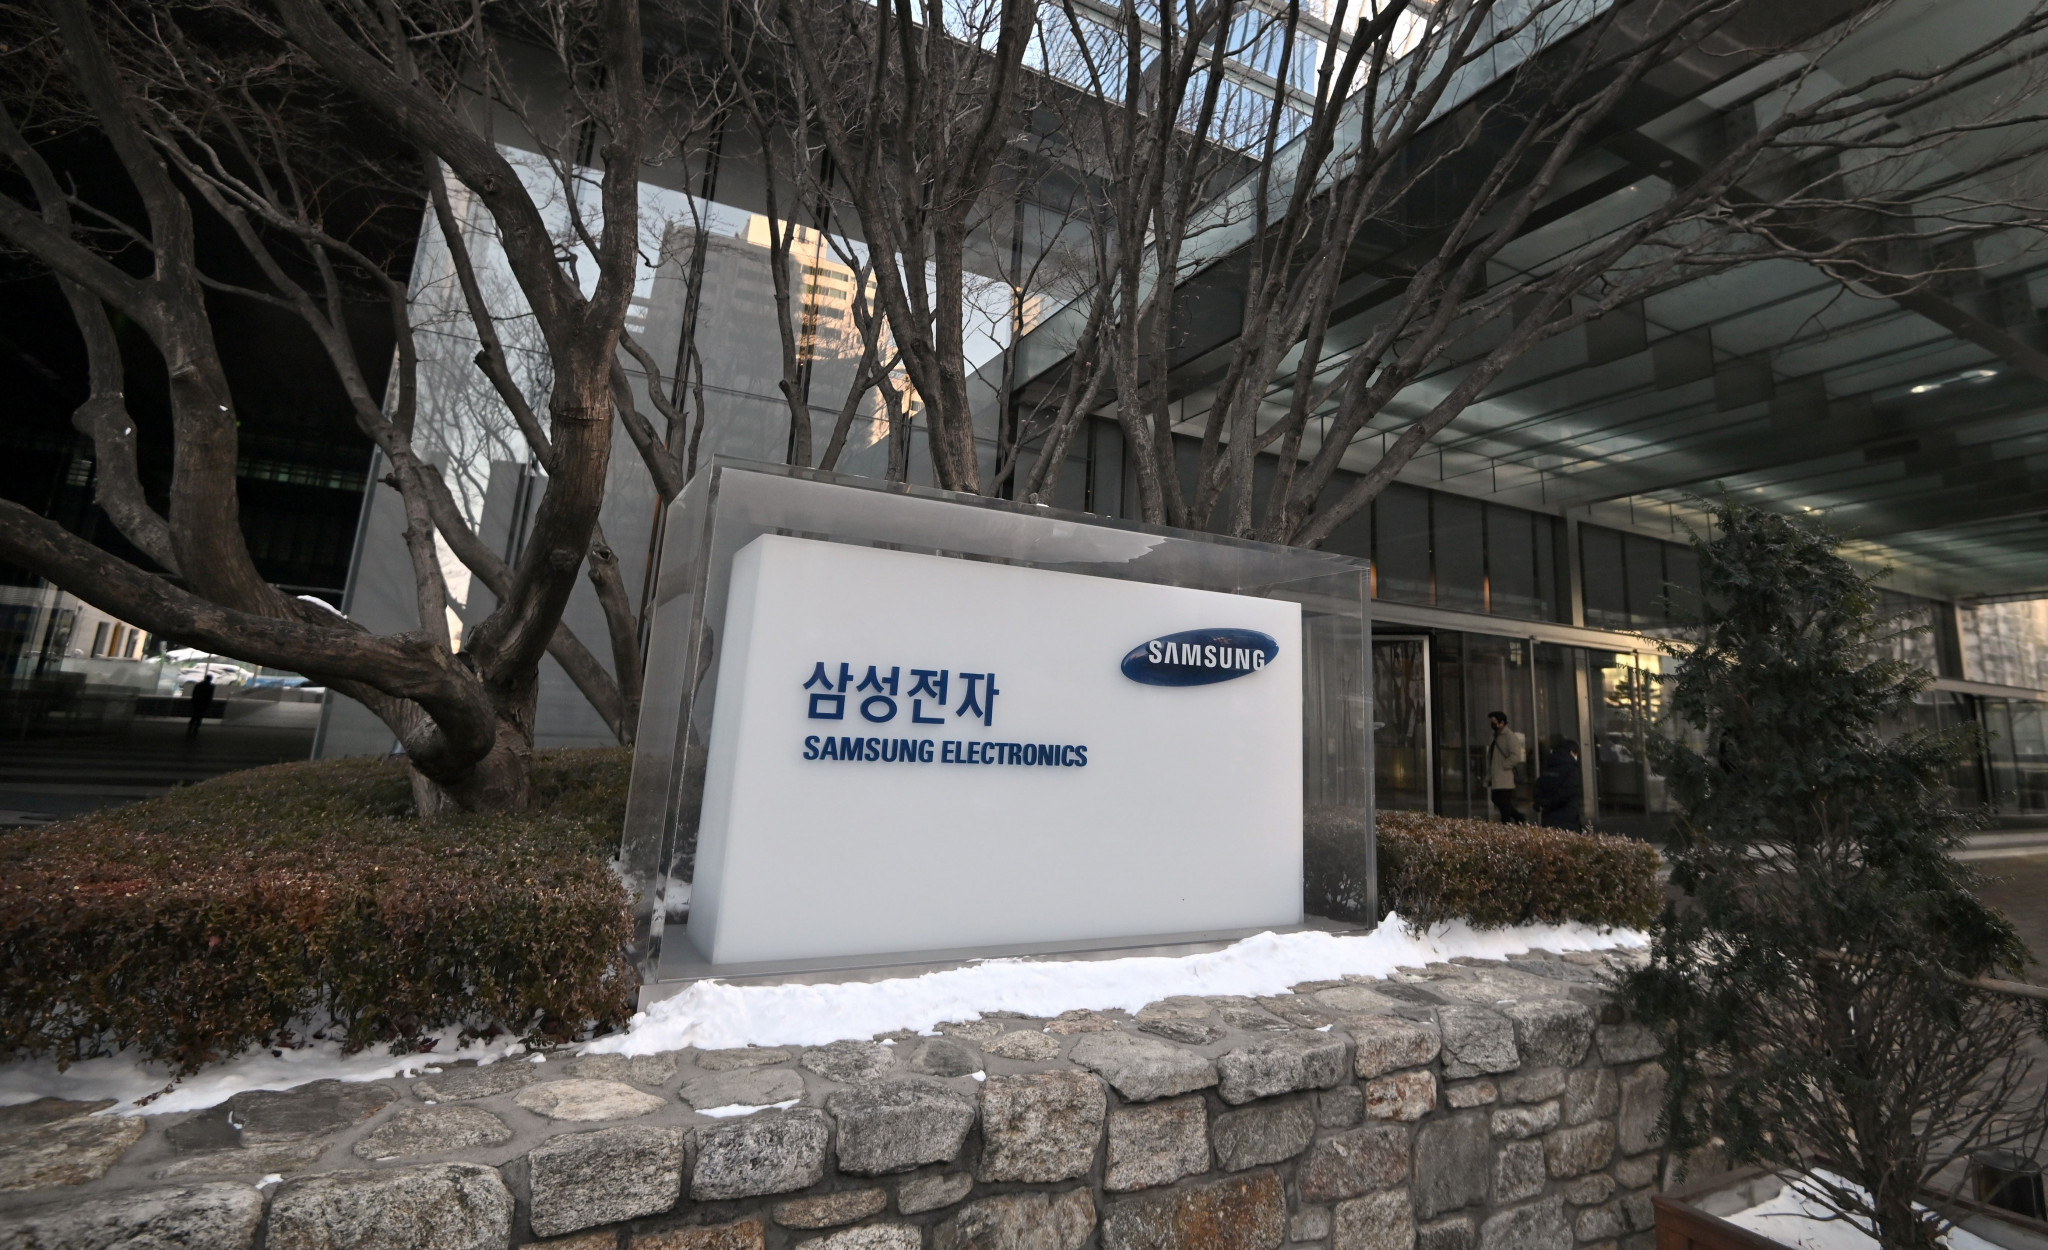 Samsung could be without its top decision-maker for up to 18 months after Lee Jae-Yong's sentencing by a court in Seoul today